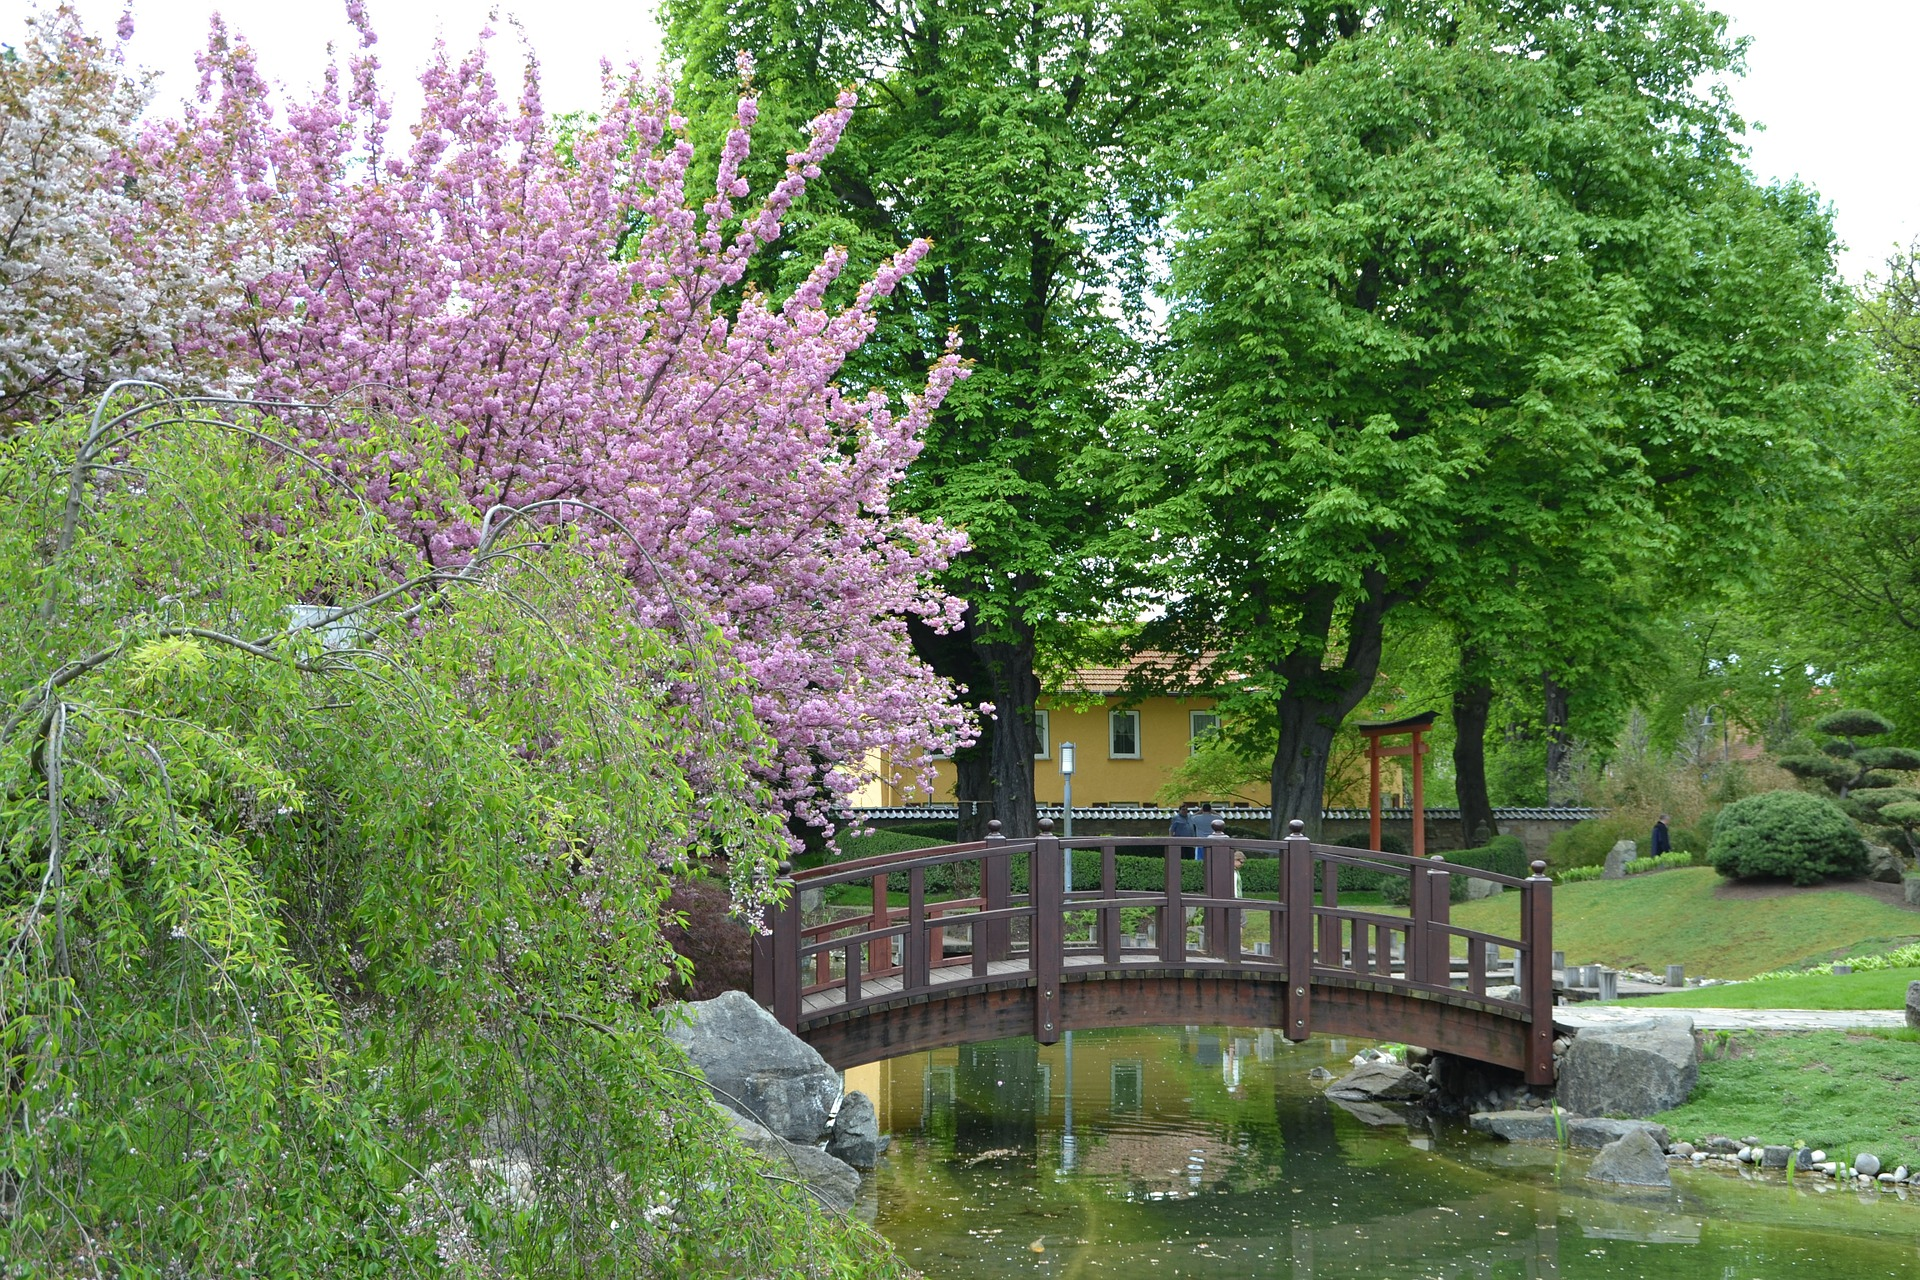 A bridge in the pond with blossoming pink cherries.